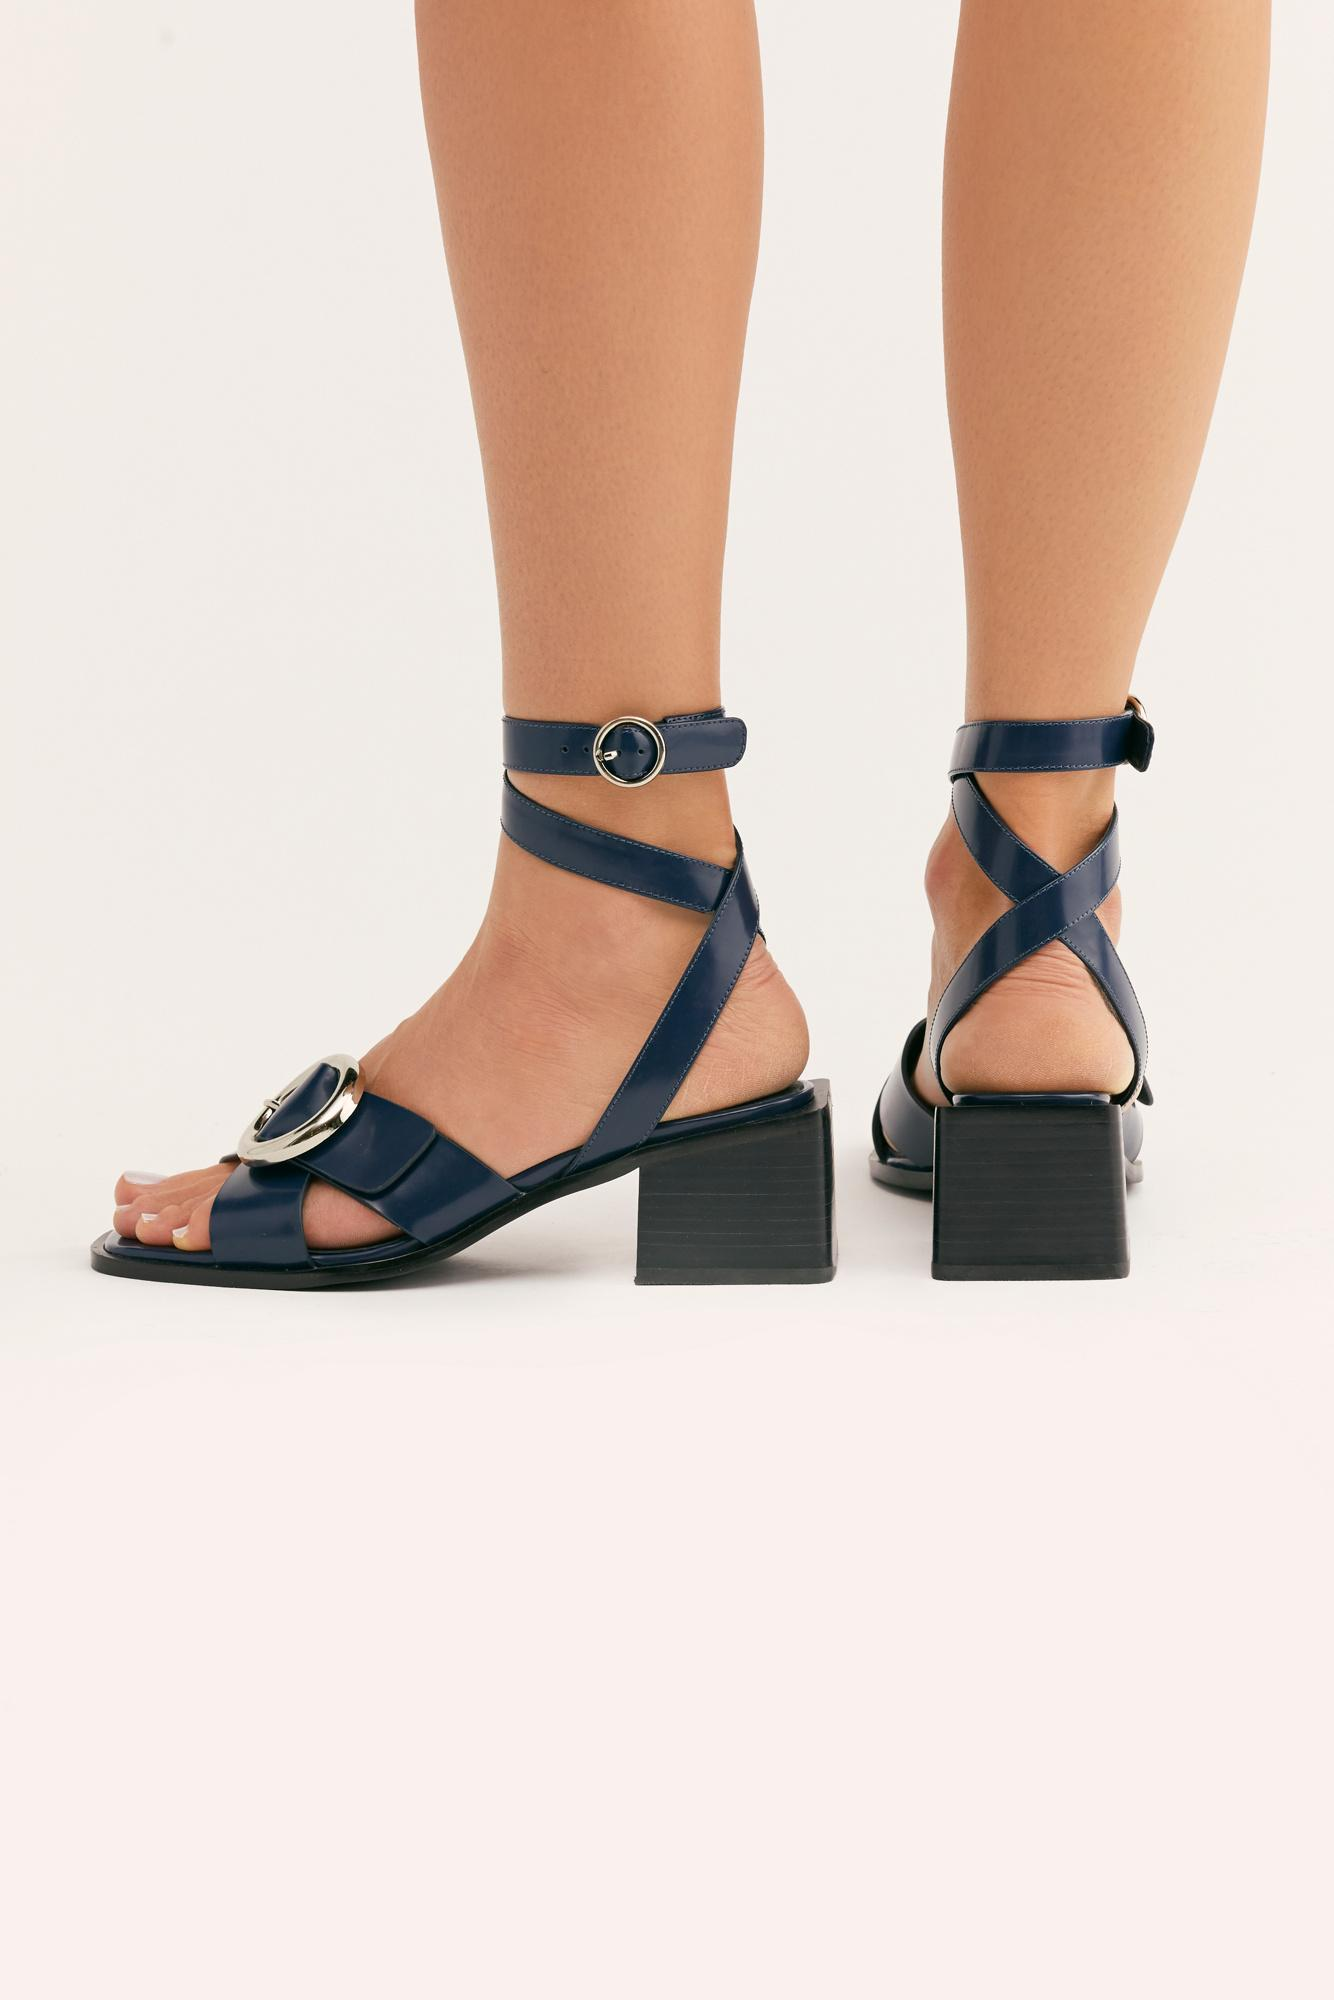 b11d81e74c4 Lyst - Free People Gellar Block Heel By Jeffrey Campbell in Blue ...